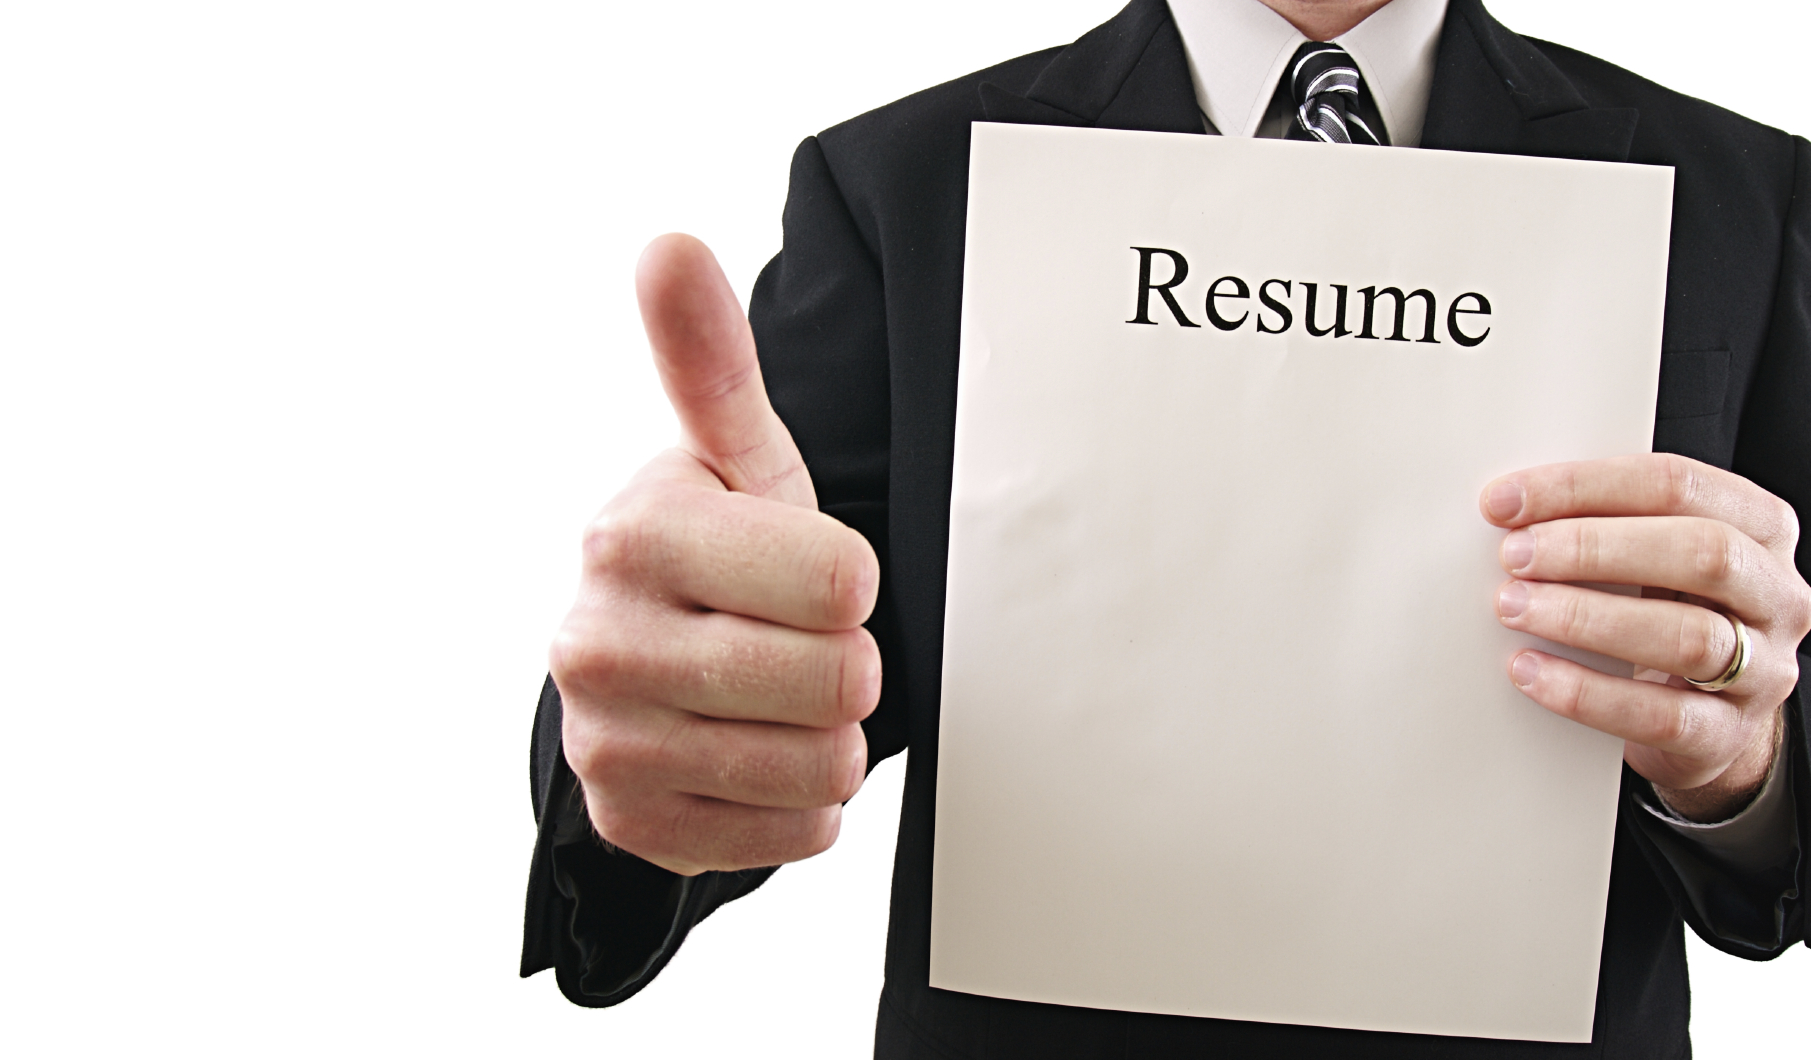 michael allen above the law resume job search applicant application lateral move lawyer associate partner